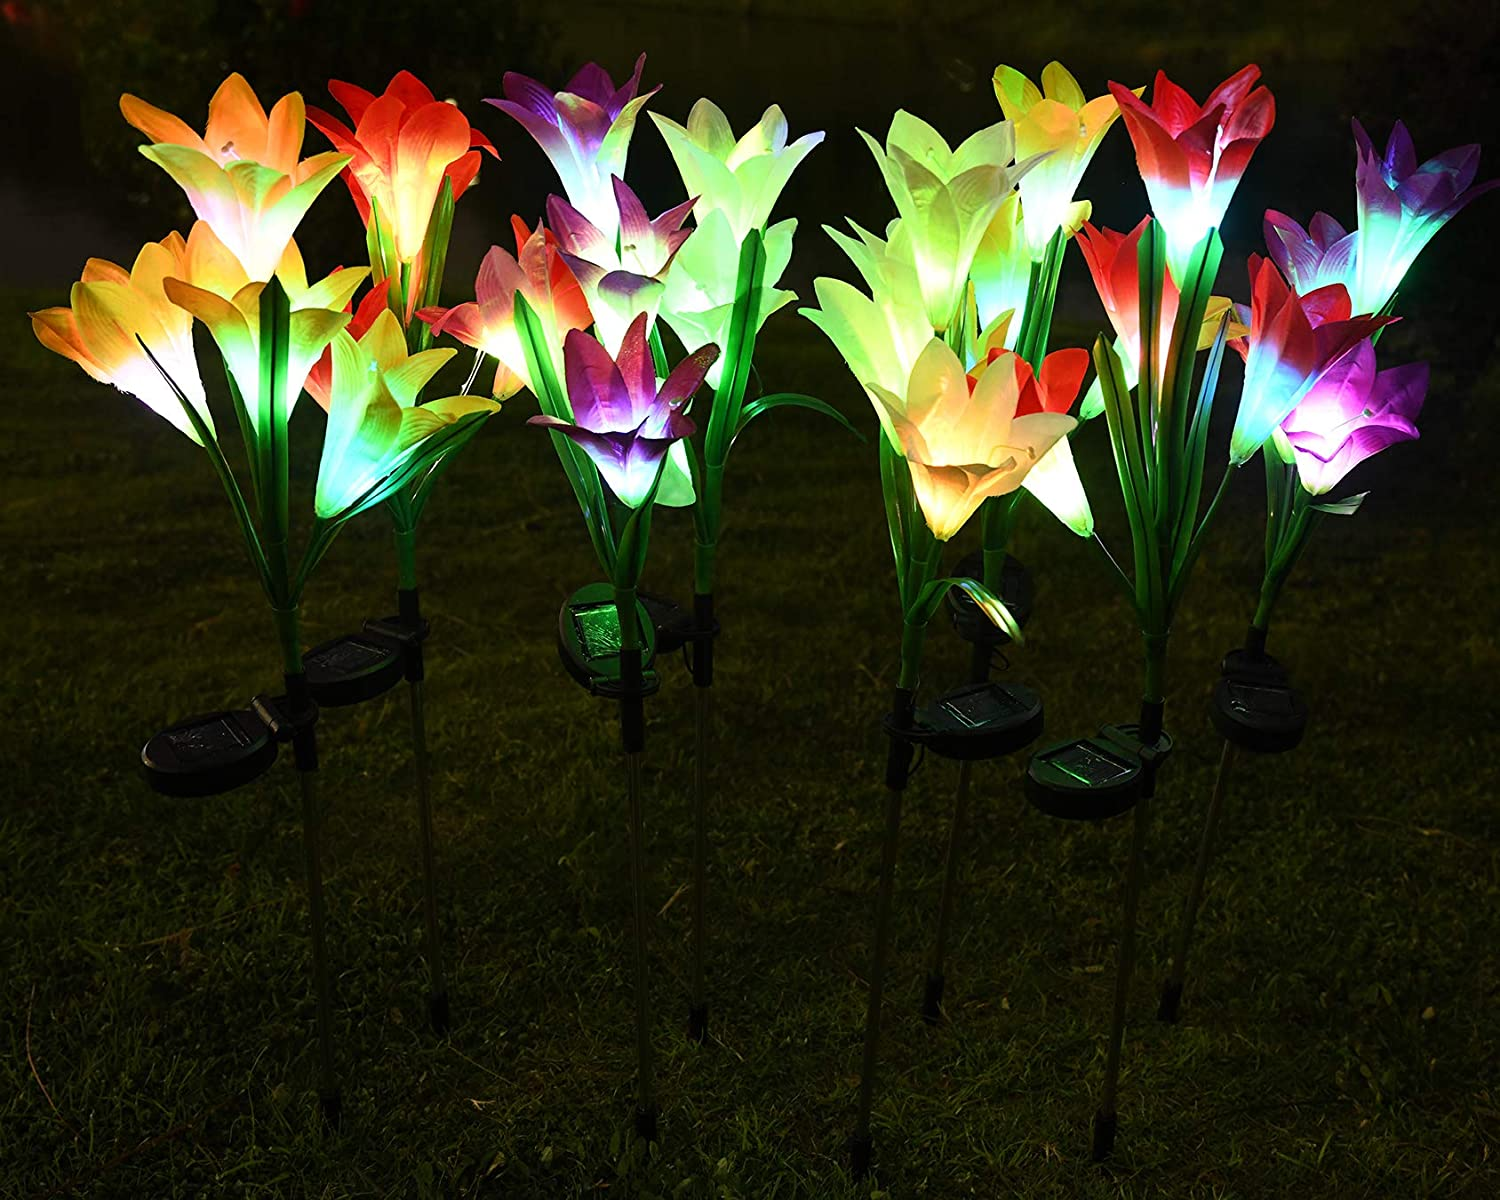 BOOTOP Solar Flowers - Lily Solar Garden Stake Lights,8 Pack Powered Lights with 32 Lily Flowers,Waterproof 7 Color Changing LED Solar Landscape Lights for Garden,Outdoor,Lawn,Yard,Pathway Decoration